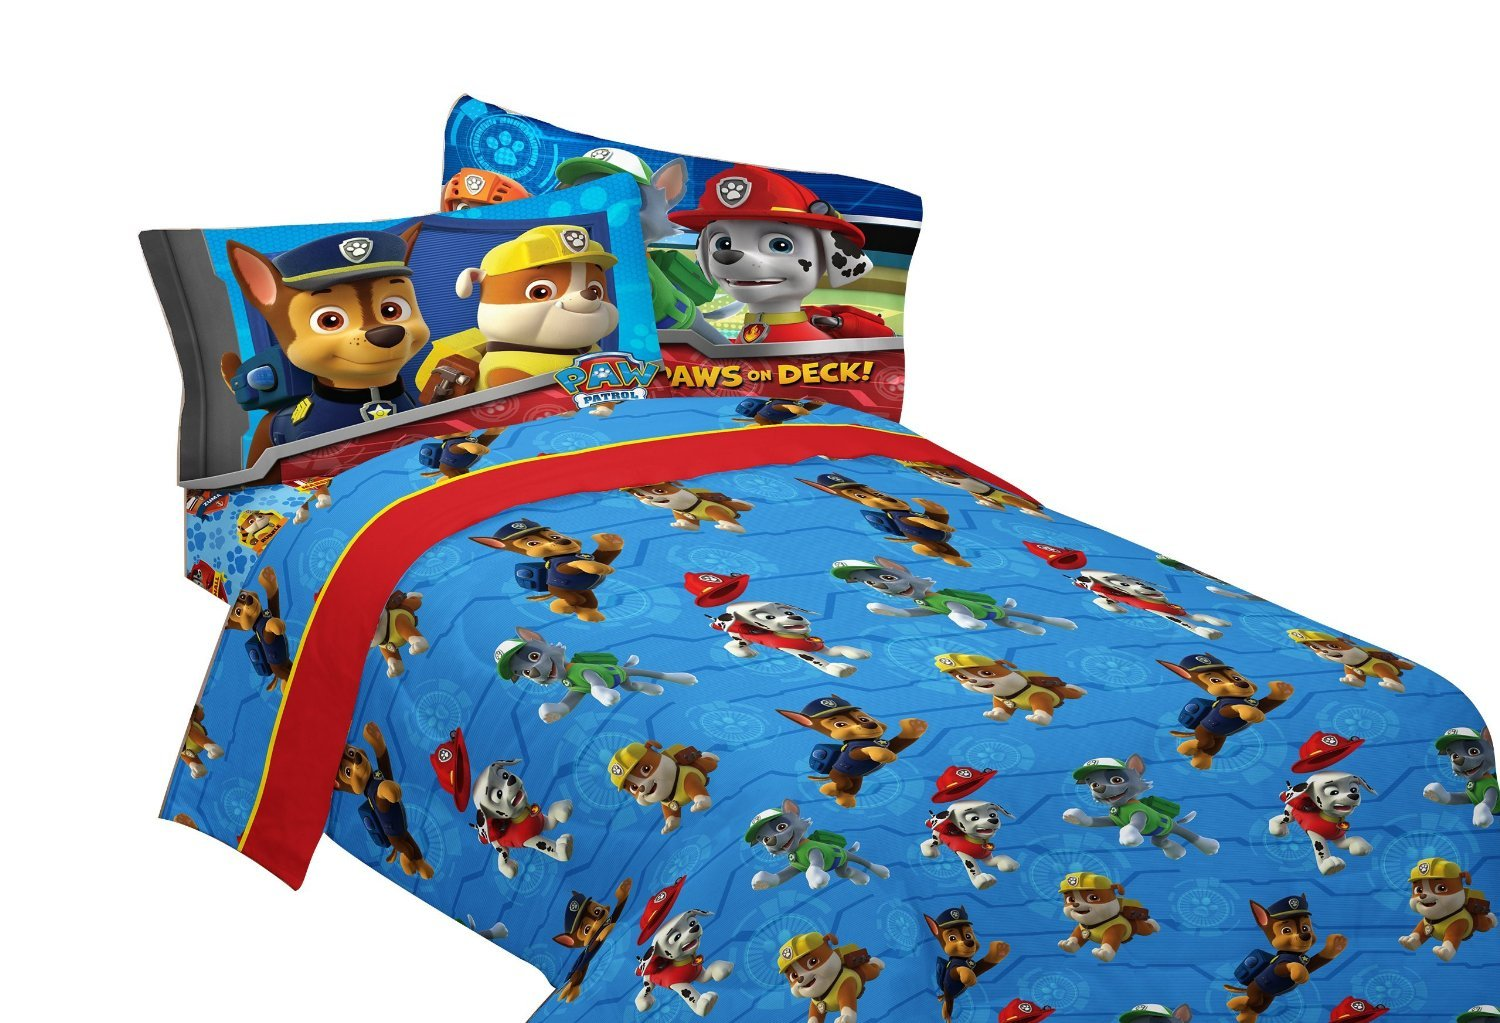 Paw Patrol Full Bedding Set Comforter and Sheets